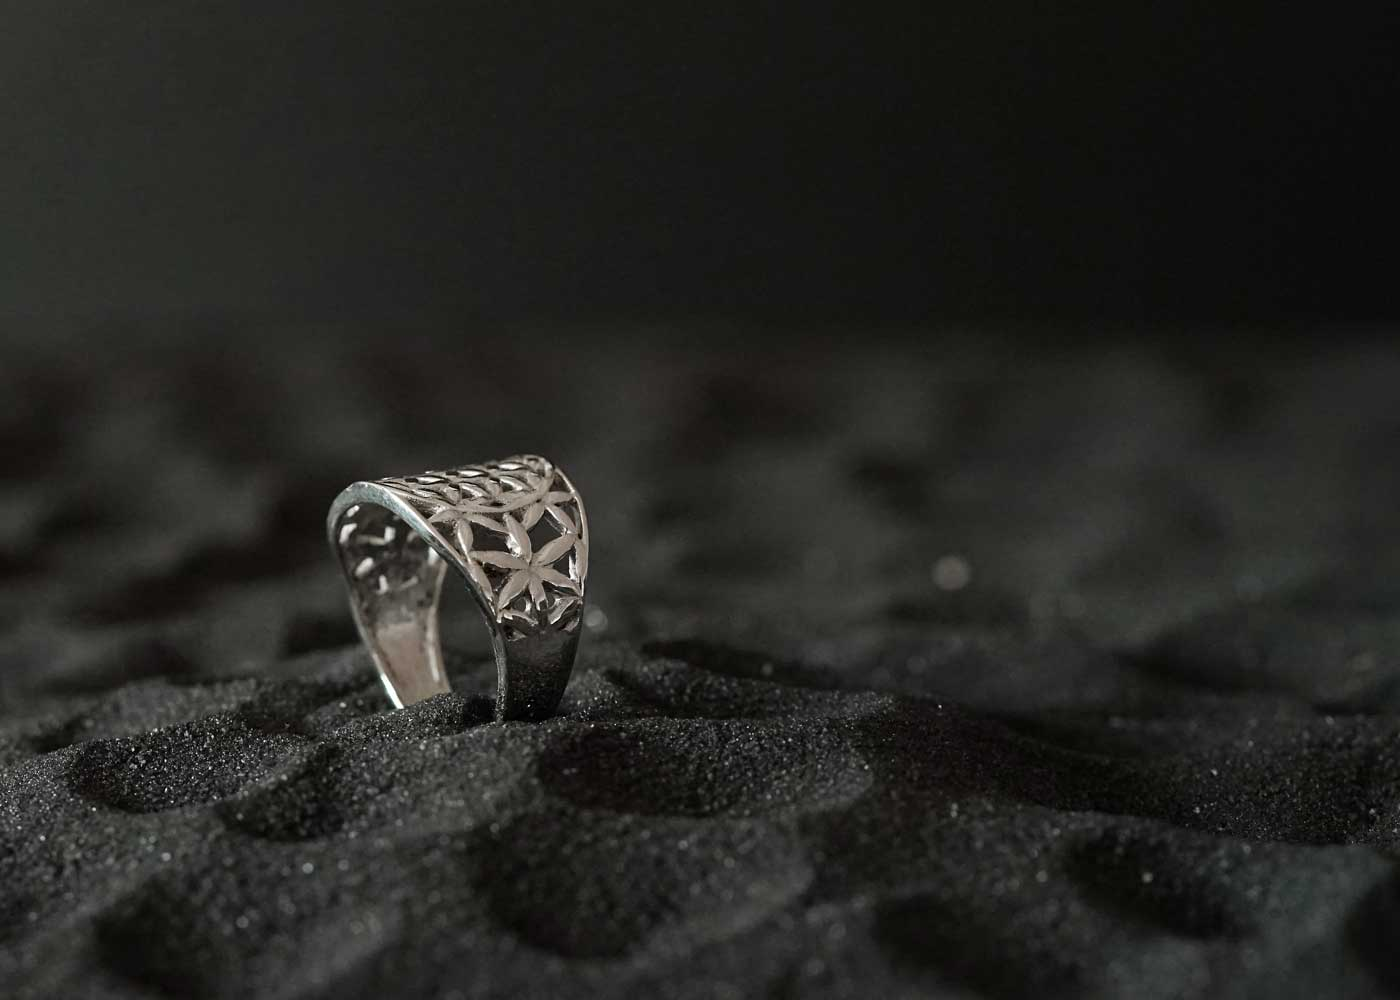 Telos Magic Seed Of Life Silver Ring 1 Side View1